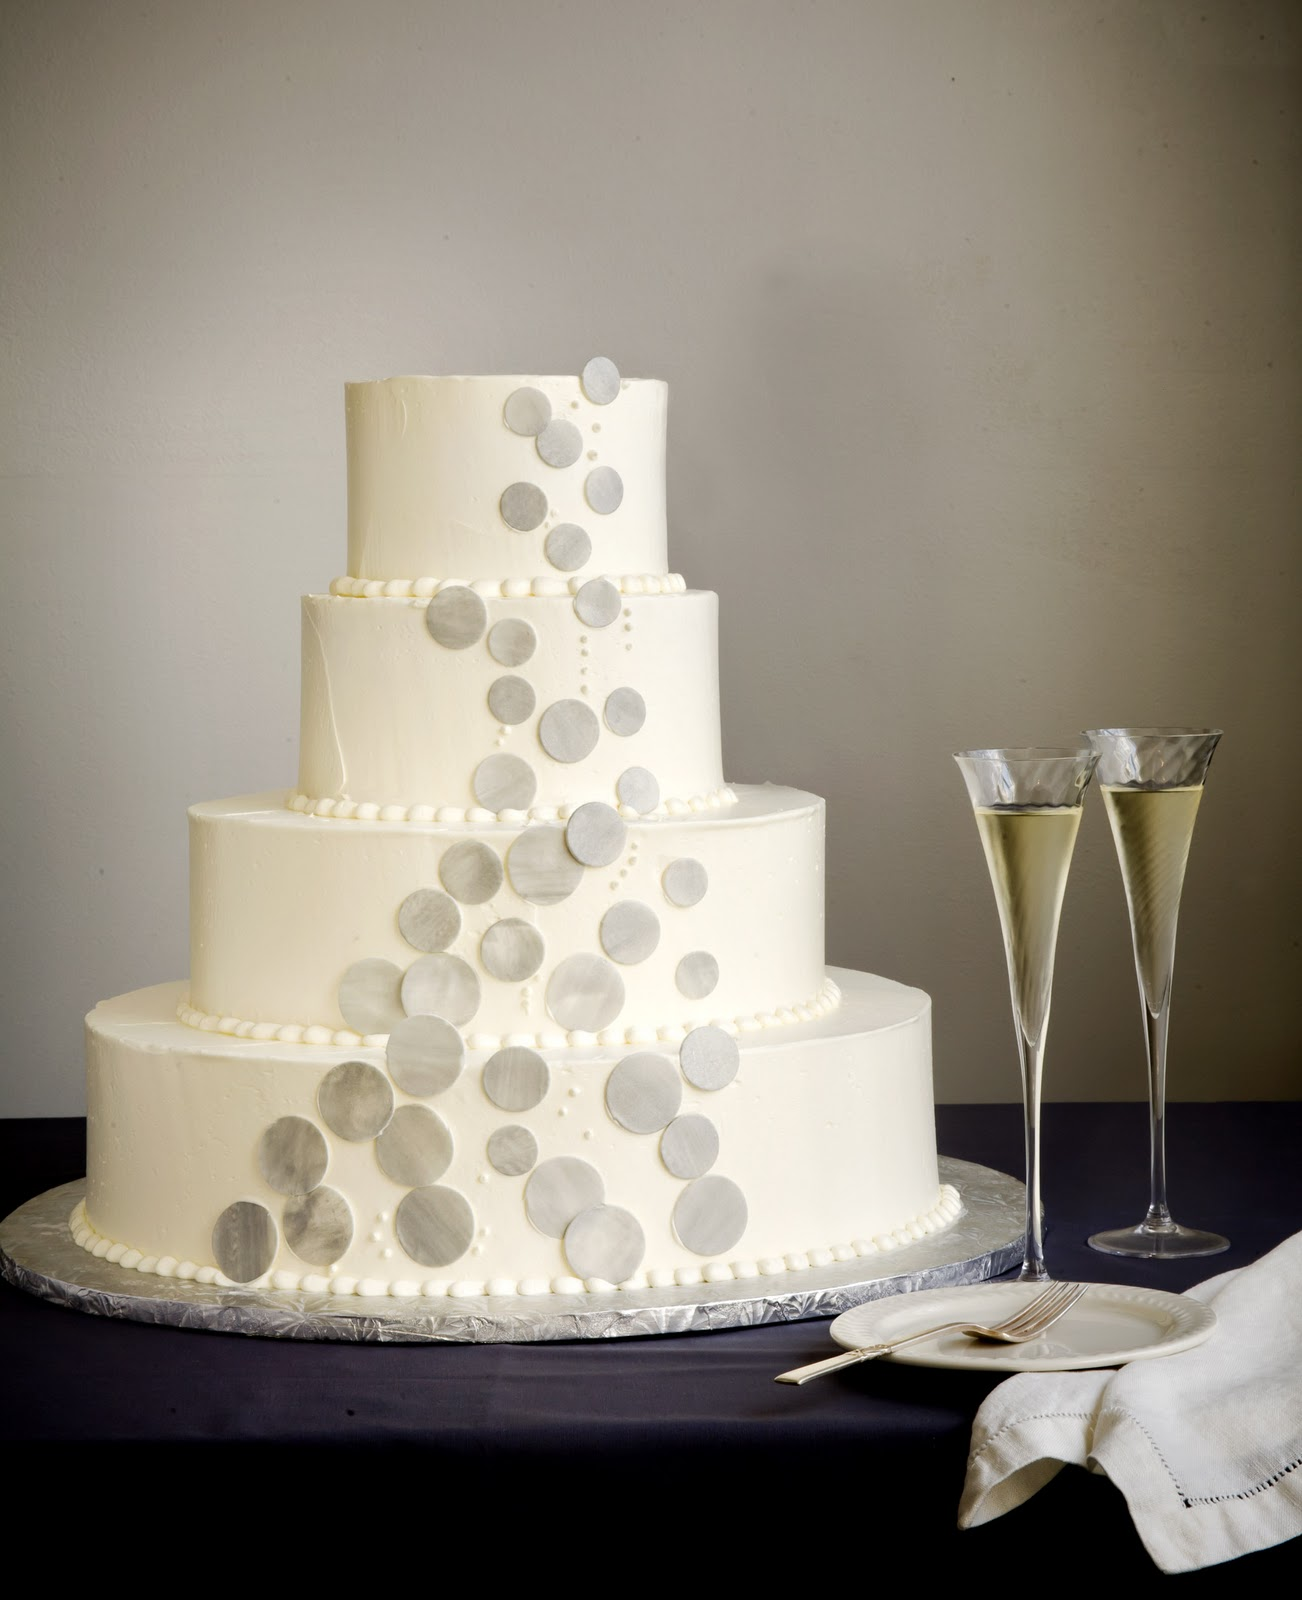 a simple cake three new wedding cake ideas. Black Bedroom Furniture Sets. Home Design Ideas